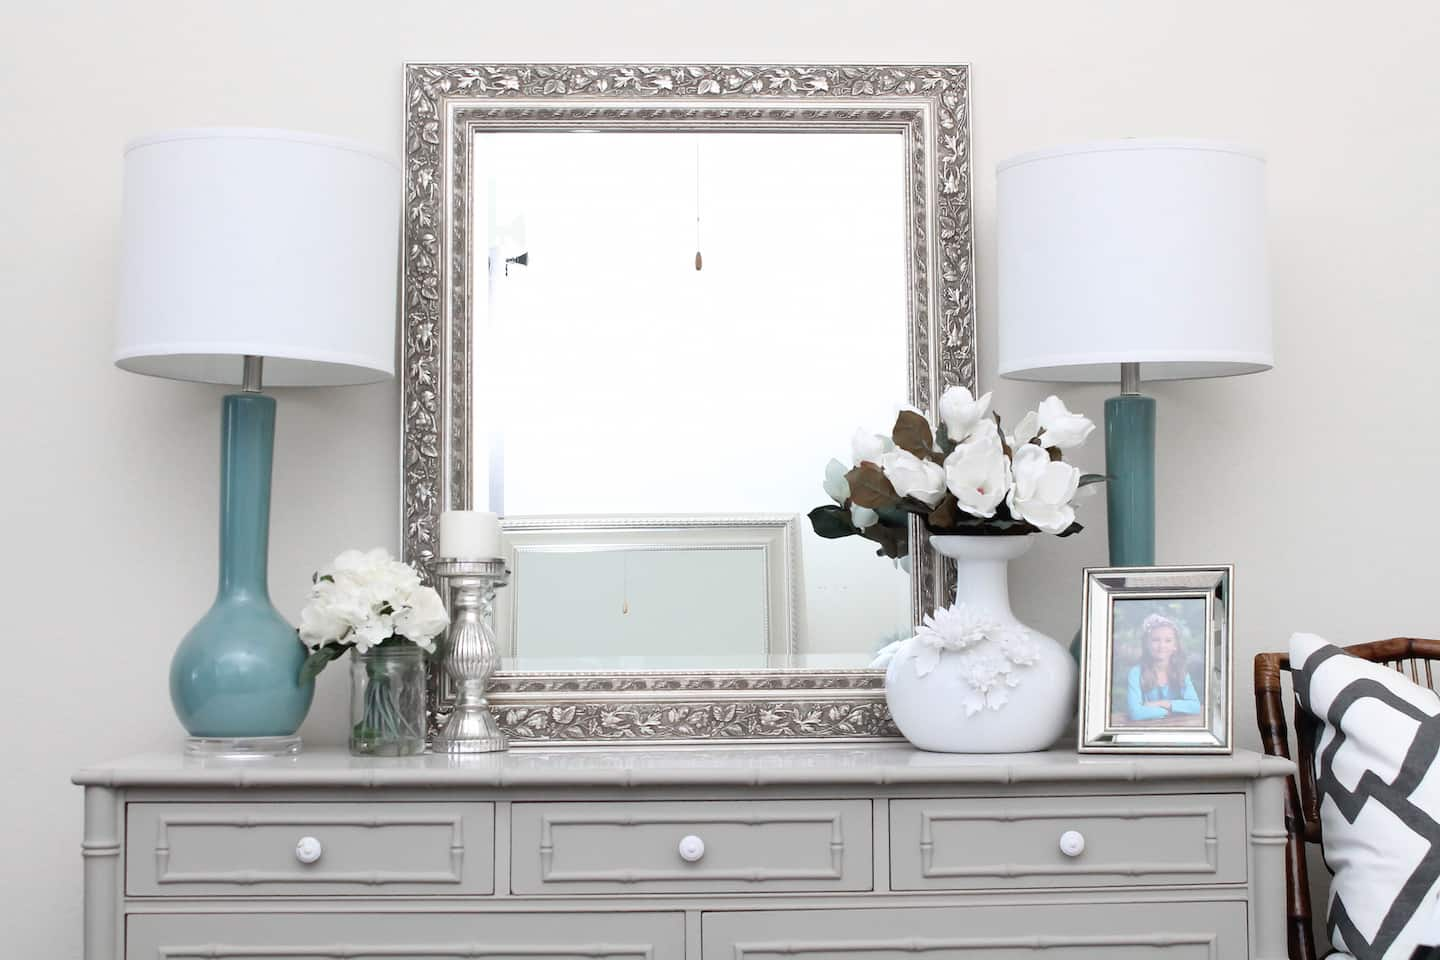 top office decorating ideas.htm 5 tips on how to decorate a dresser top angie s list  5 tips on how to decorate a dresser top